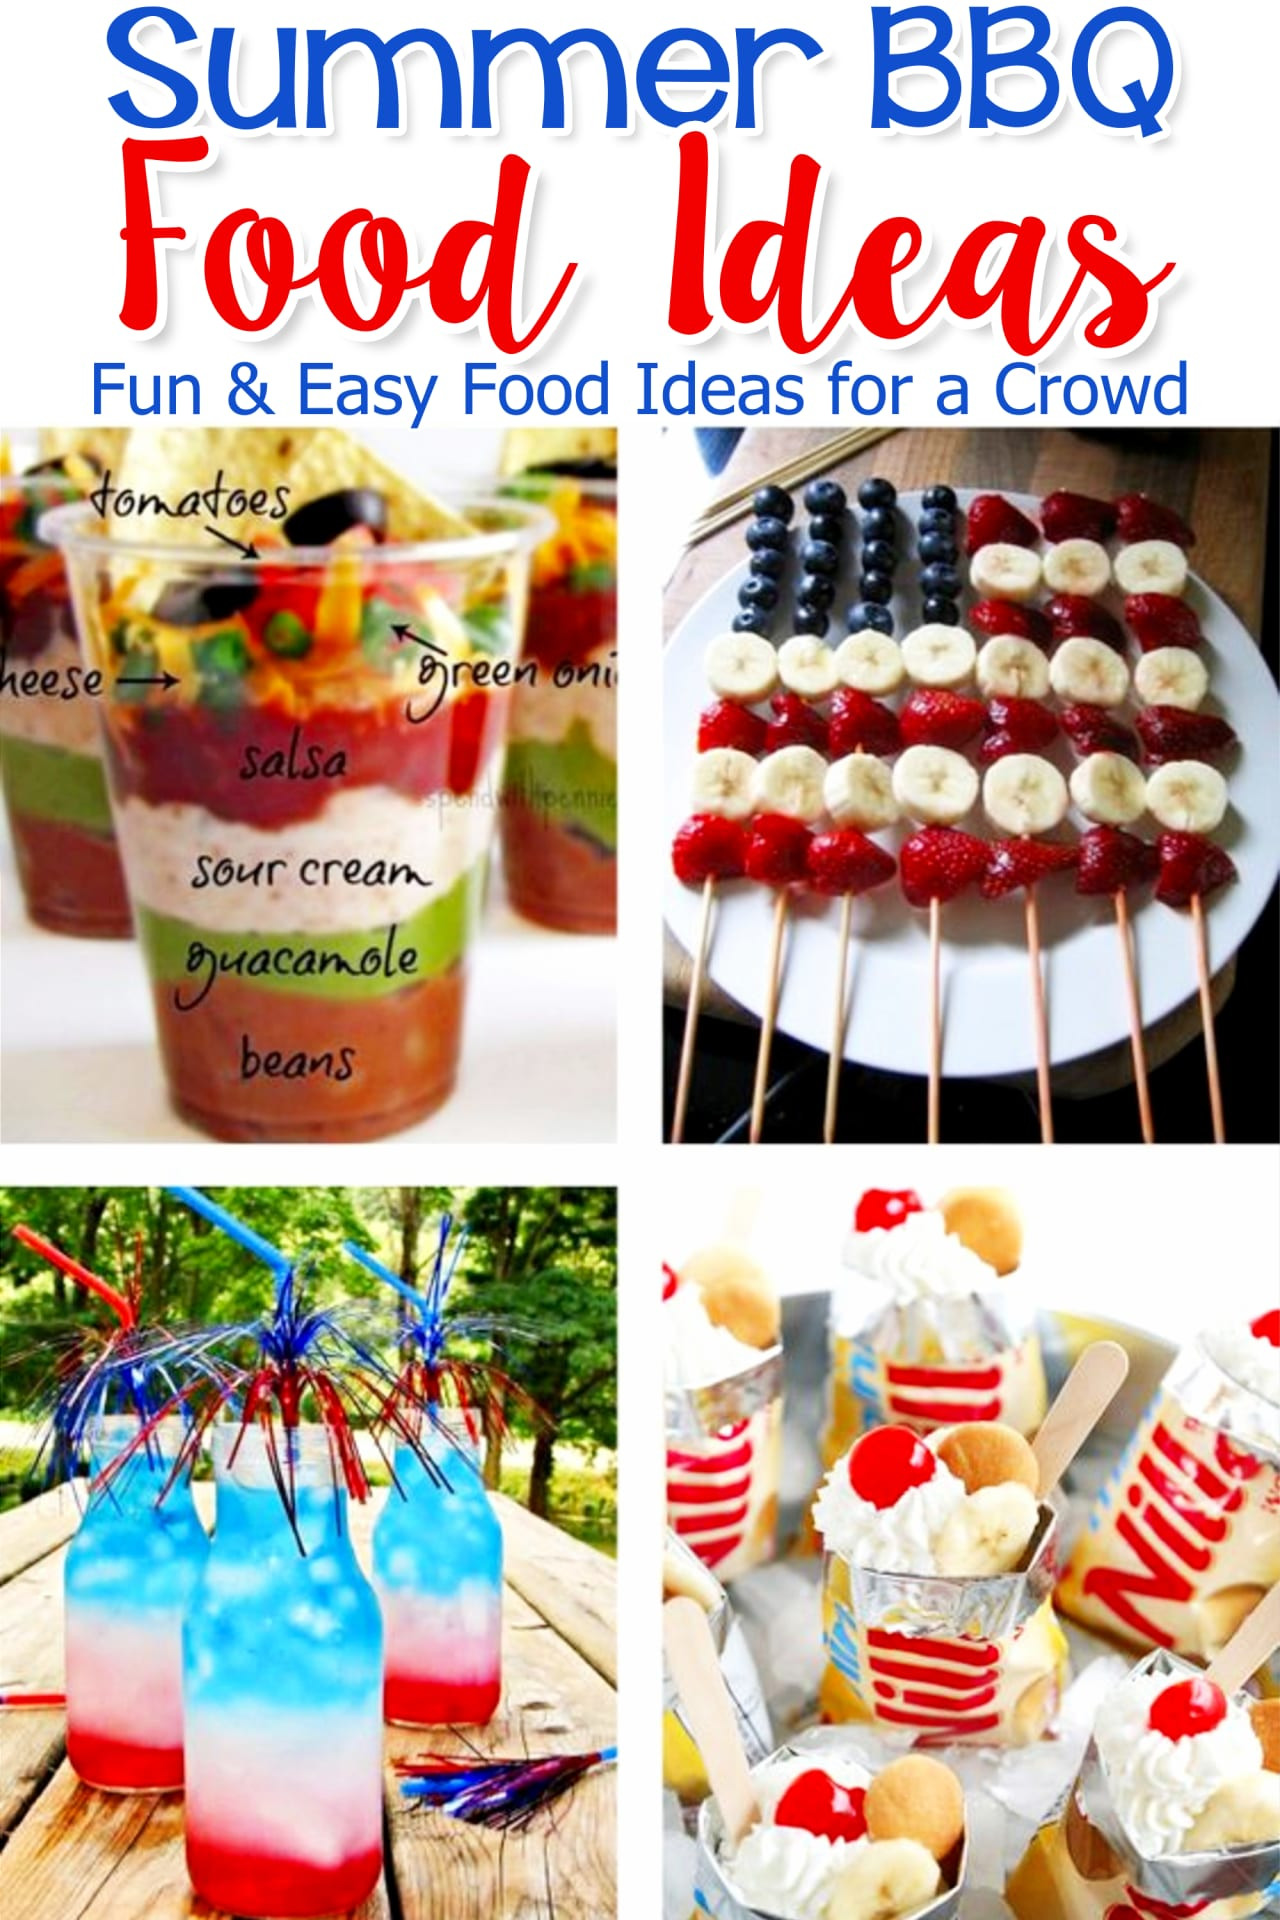 Summertime Party Food Ideas  Food Ideas for a BBQ Party EASY Summer Cookout Foods We Love